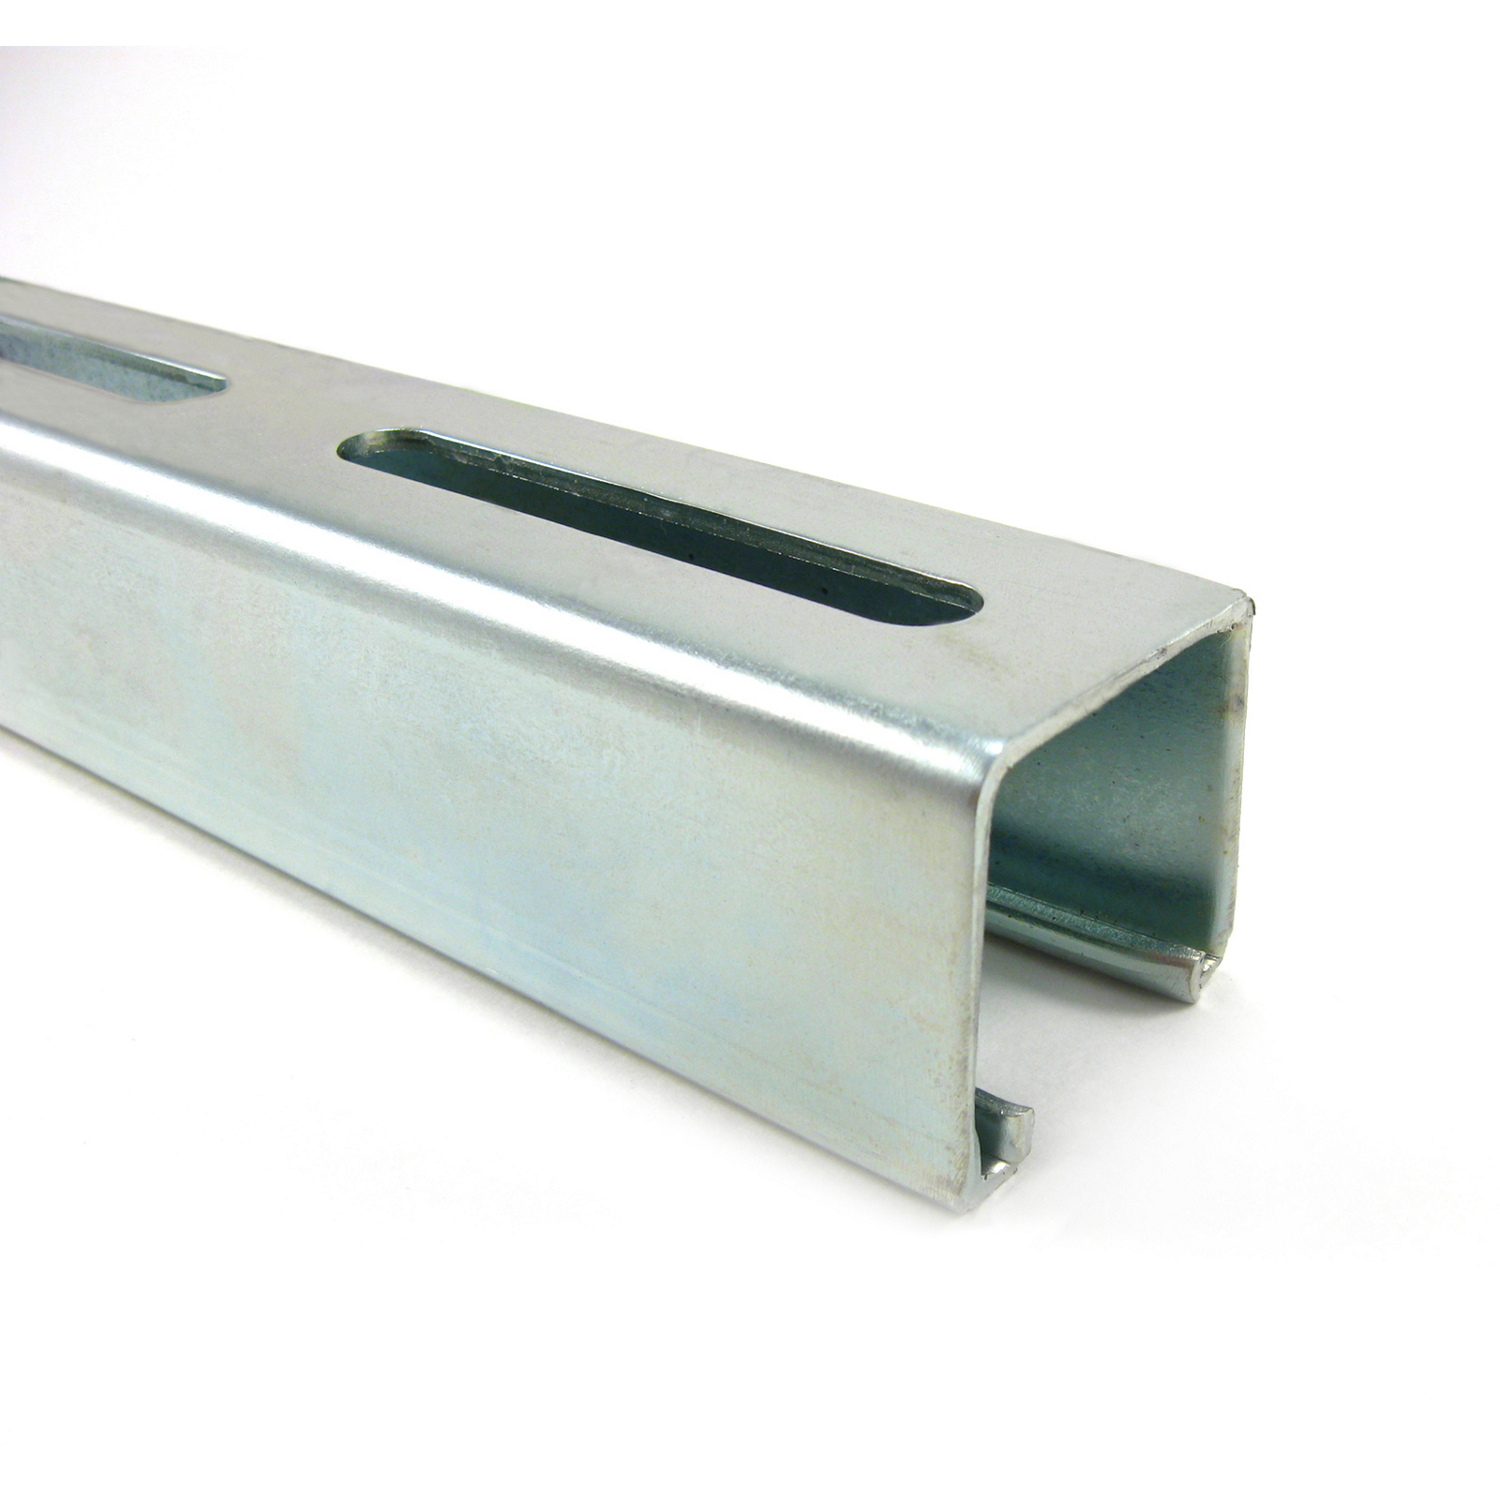 Superstrut B1400S-10PG 10' 14 ga. Steel Channel w/ Pre-Galvanized finish - Slotted